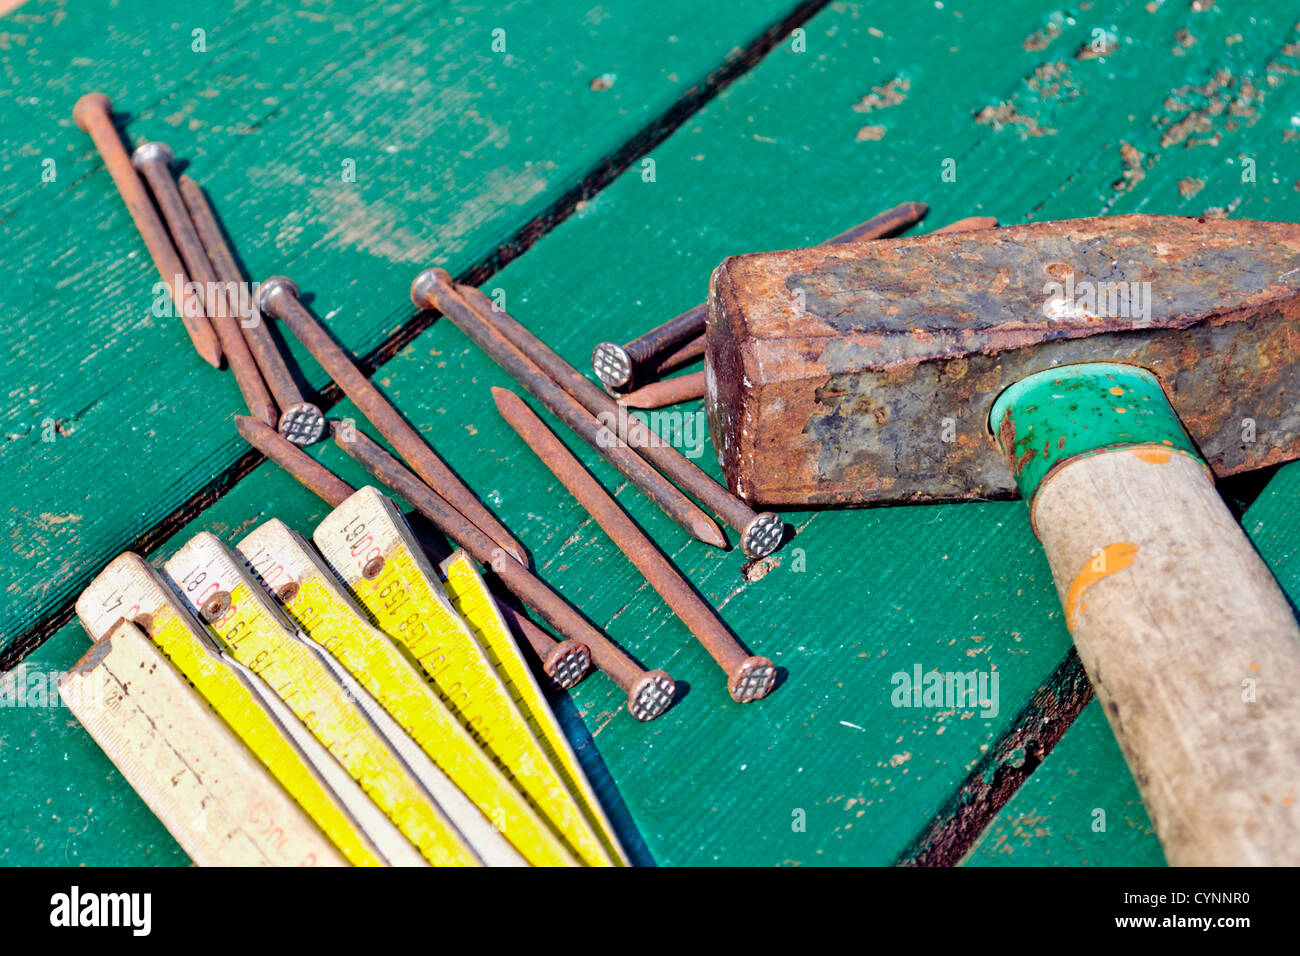 Hammer Nails On Table Stock Photos & Hammer Nails On Table Stock ...